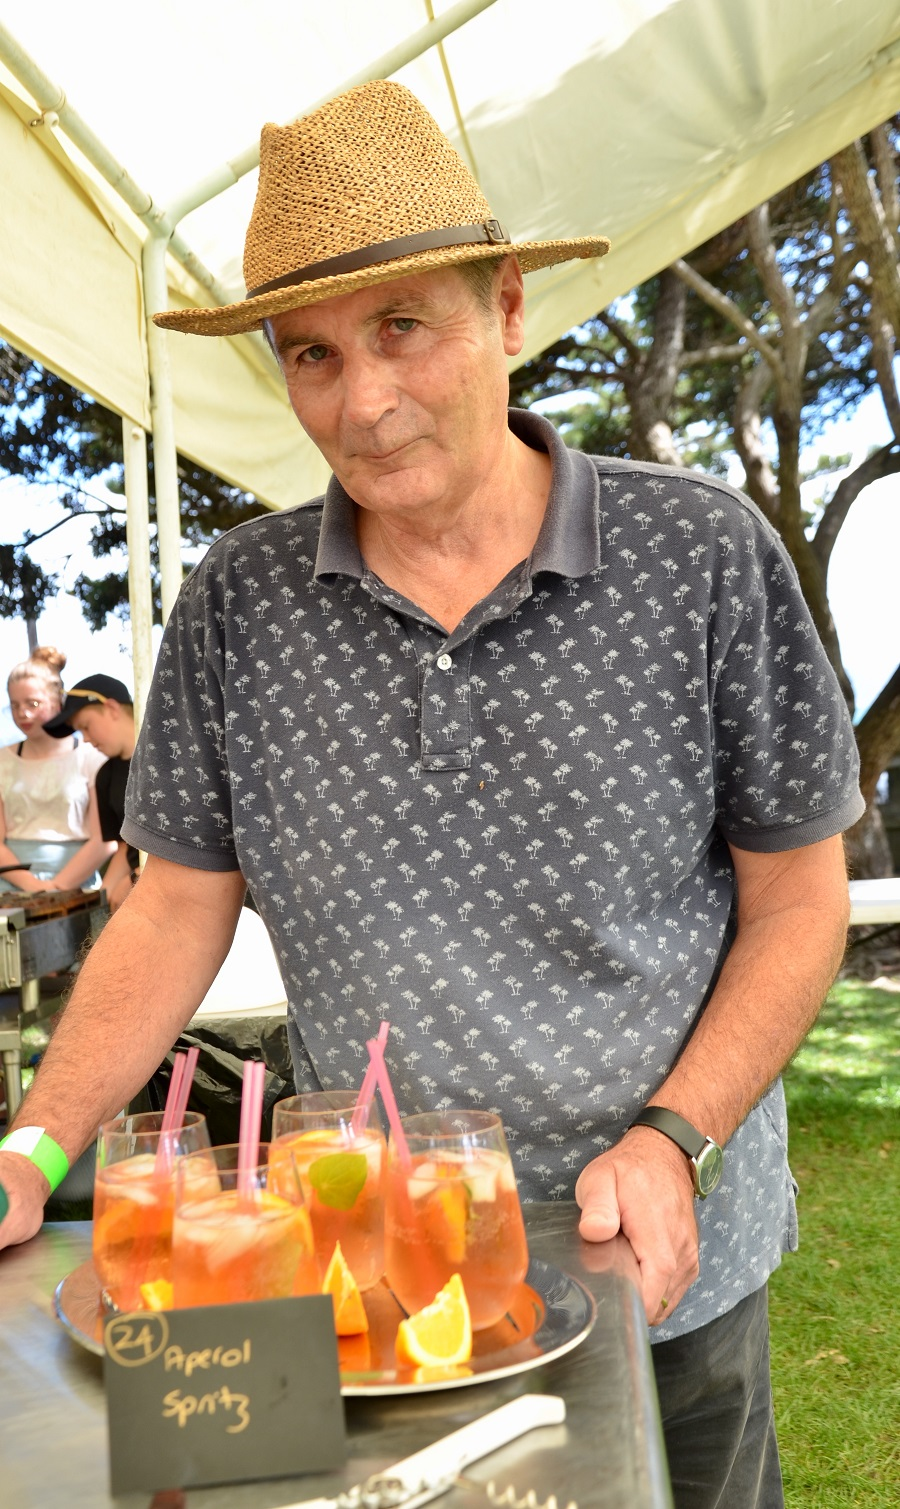 Best Story Craig Hunter Aperol Spritz A blend of four fruit and botanical wines: Quince, Rose petal, Rhubarb & Pear Cuvee as the spritz. Wild yeast & Kawakawa leaves